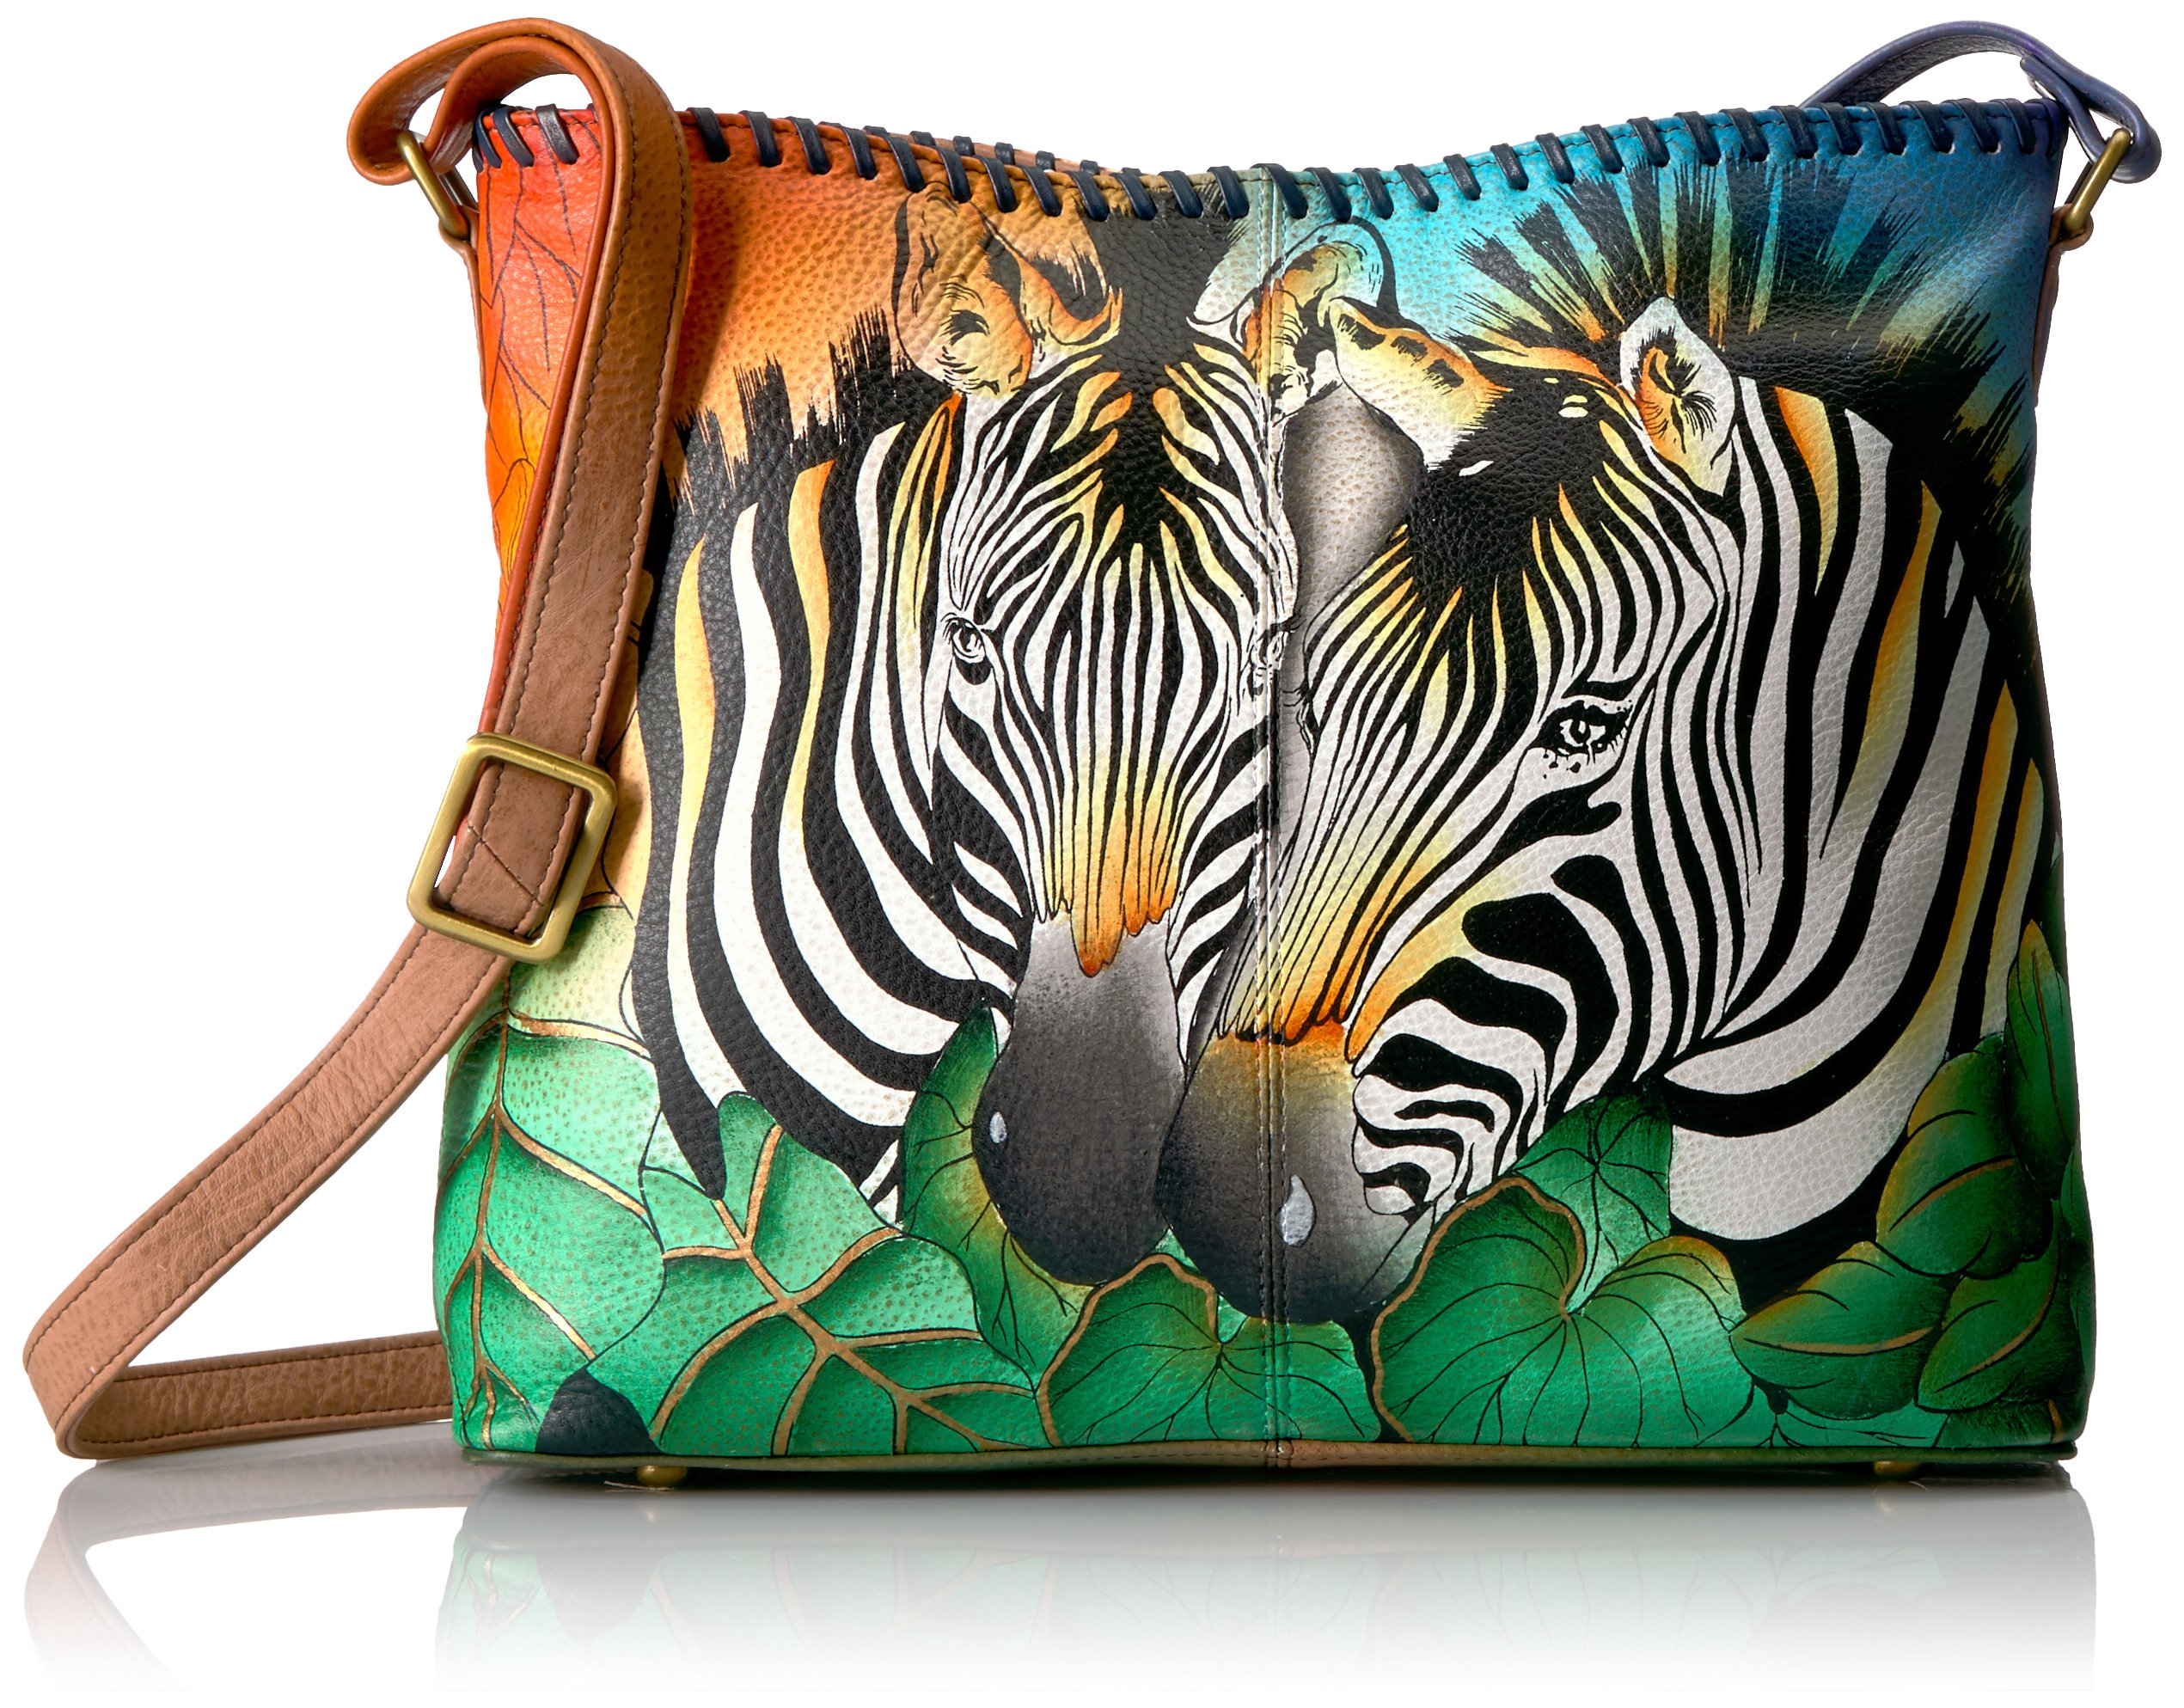 Anna by Anuschka Handpainted Leather Women's Bag, Zbs-Zebra Safari